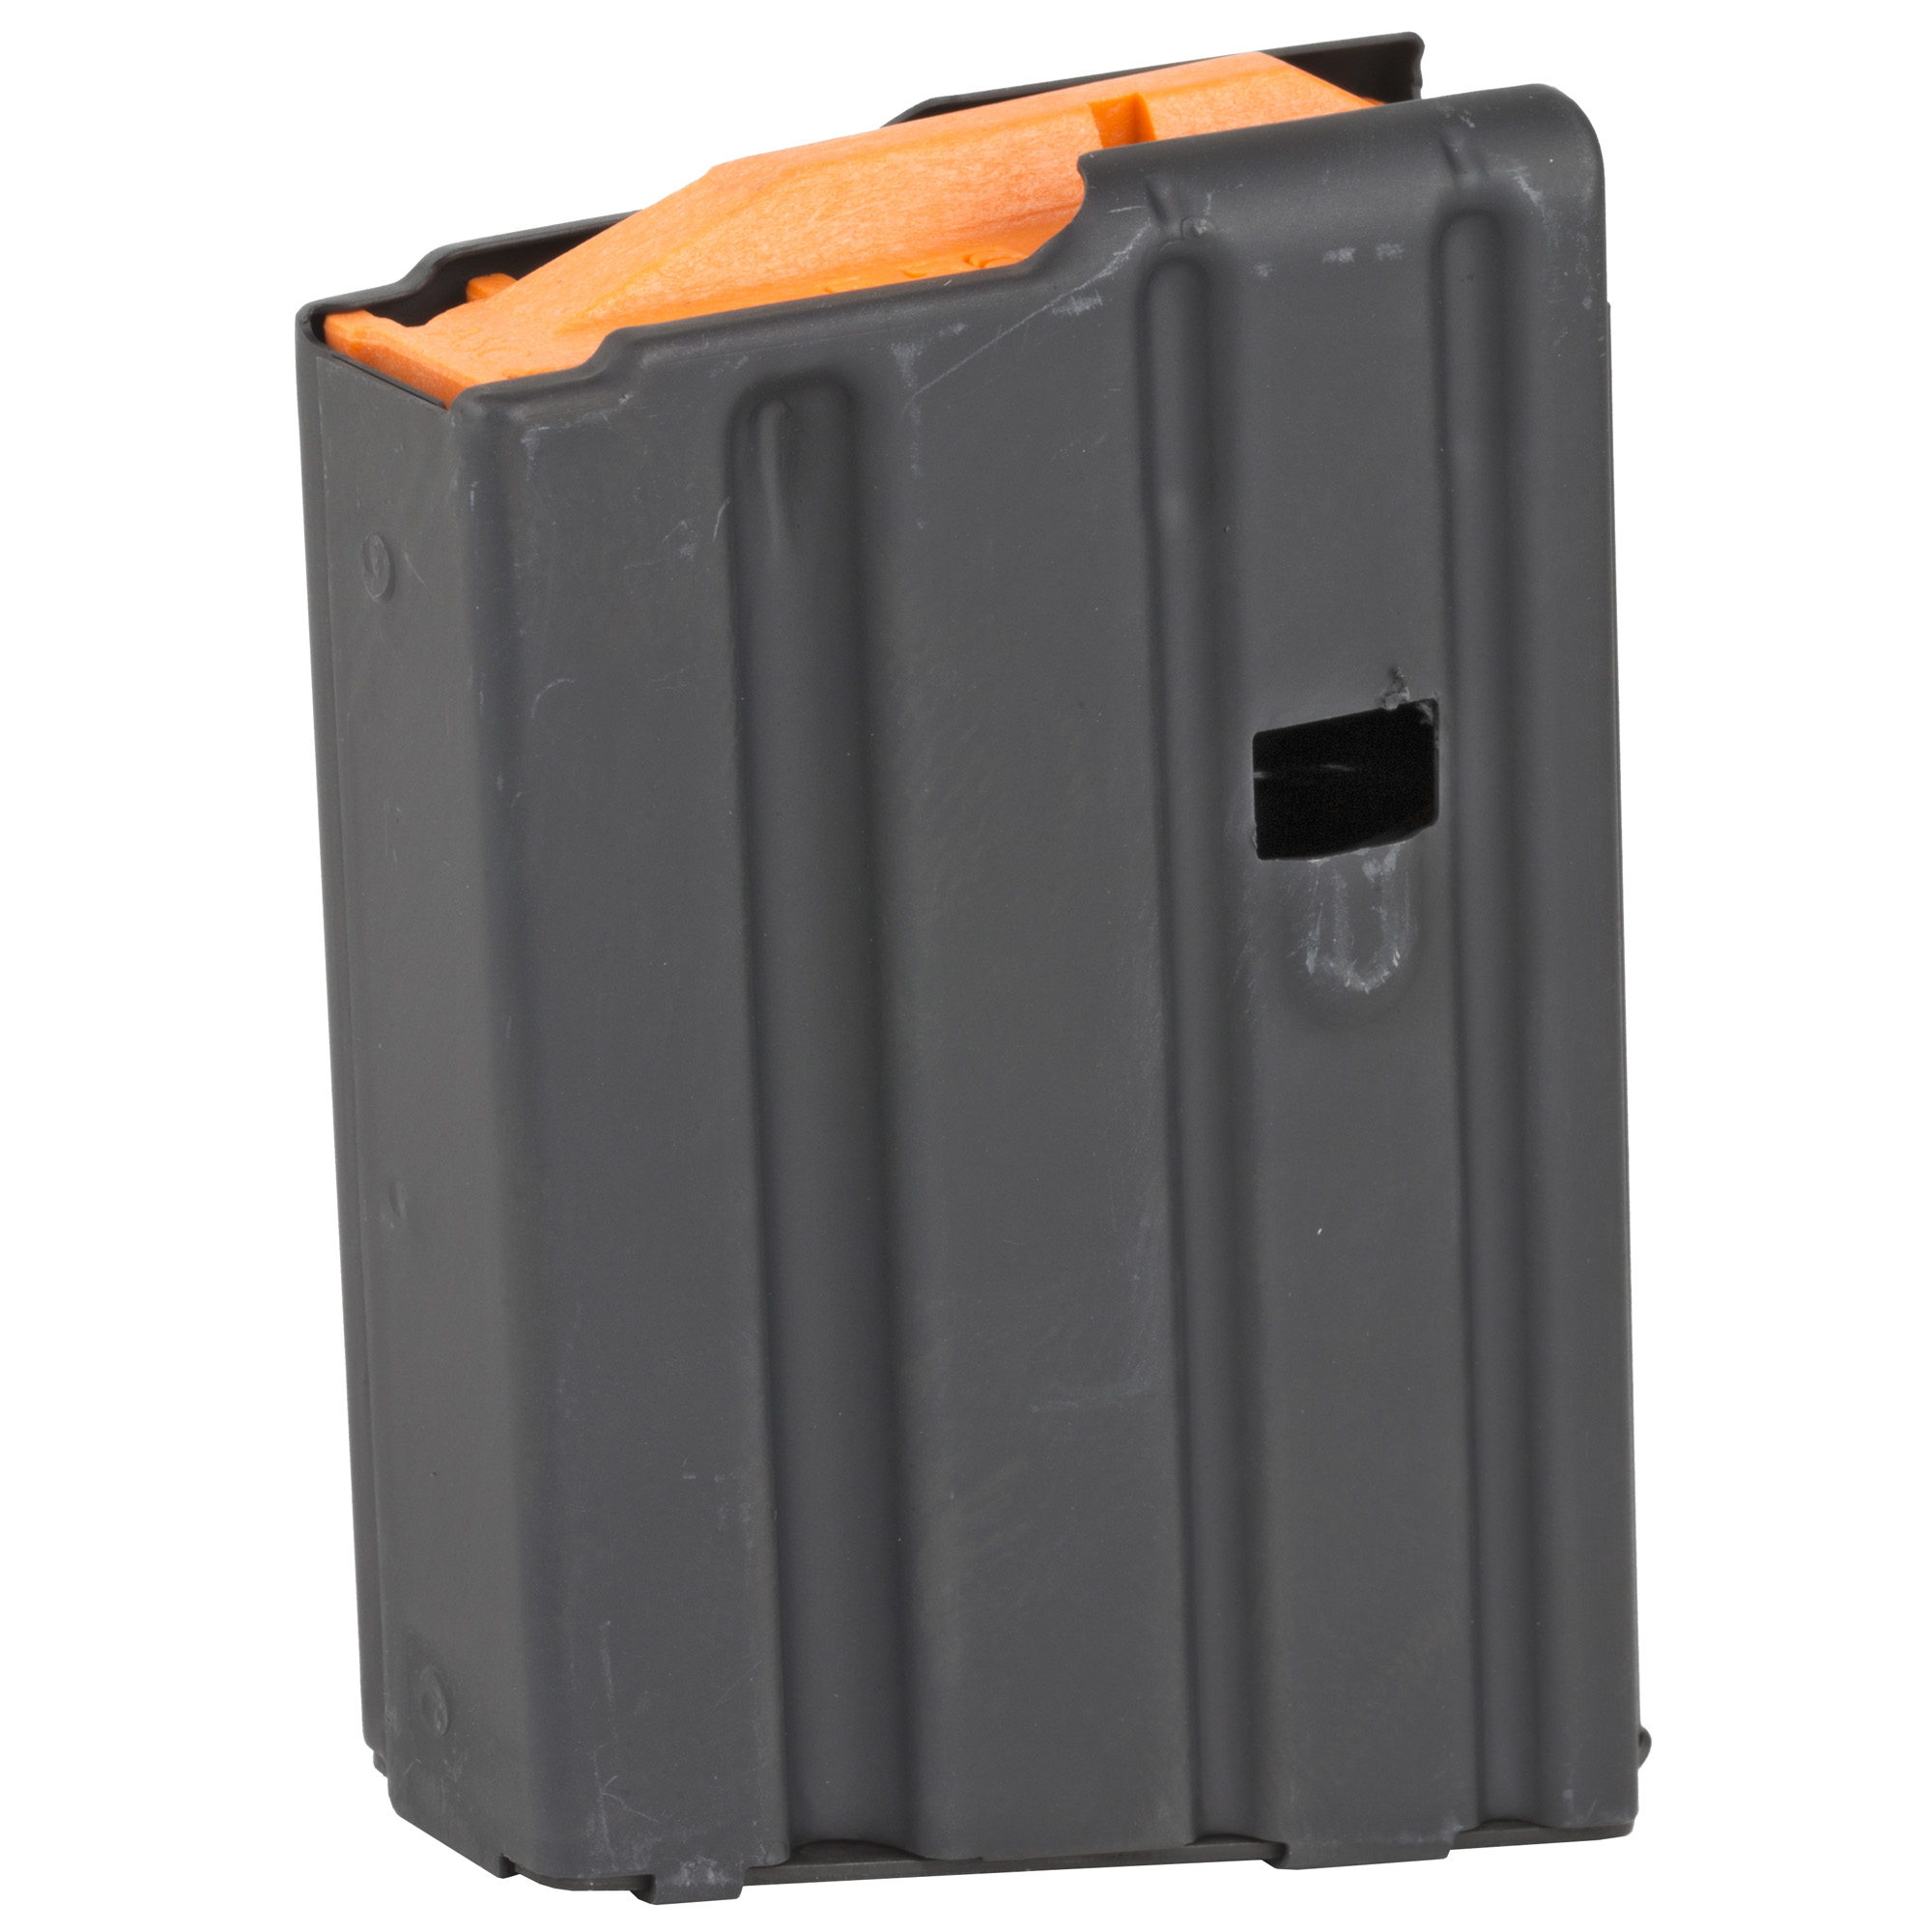 Mag Asc Ar223 10rd Sts Blk